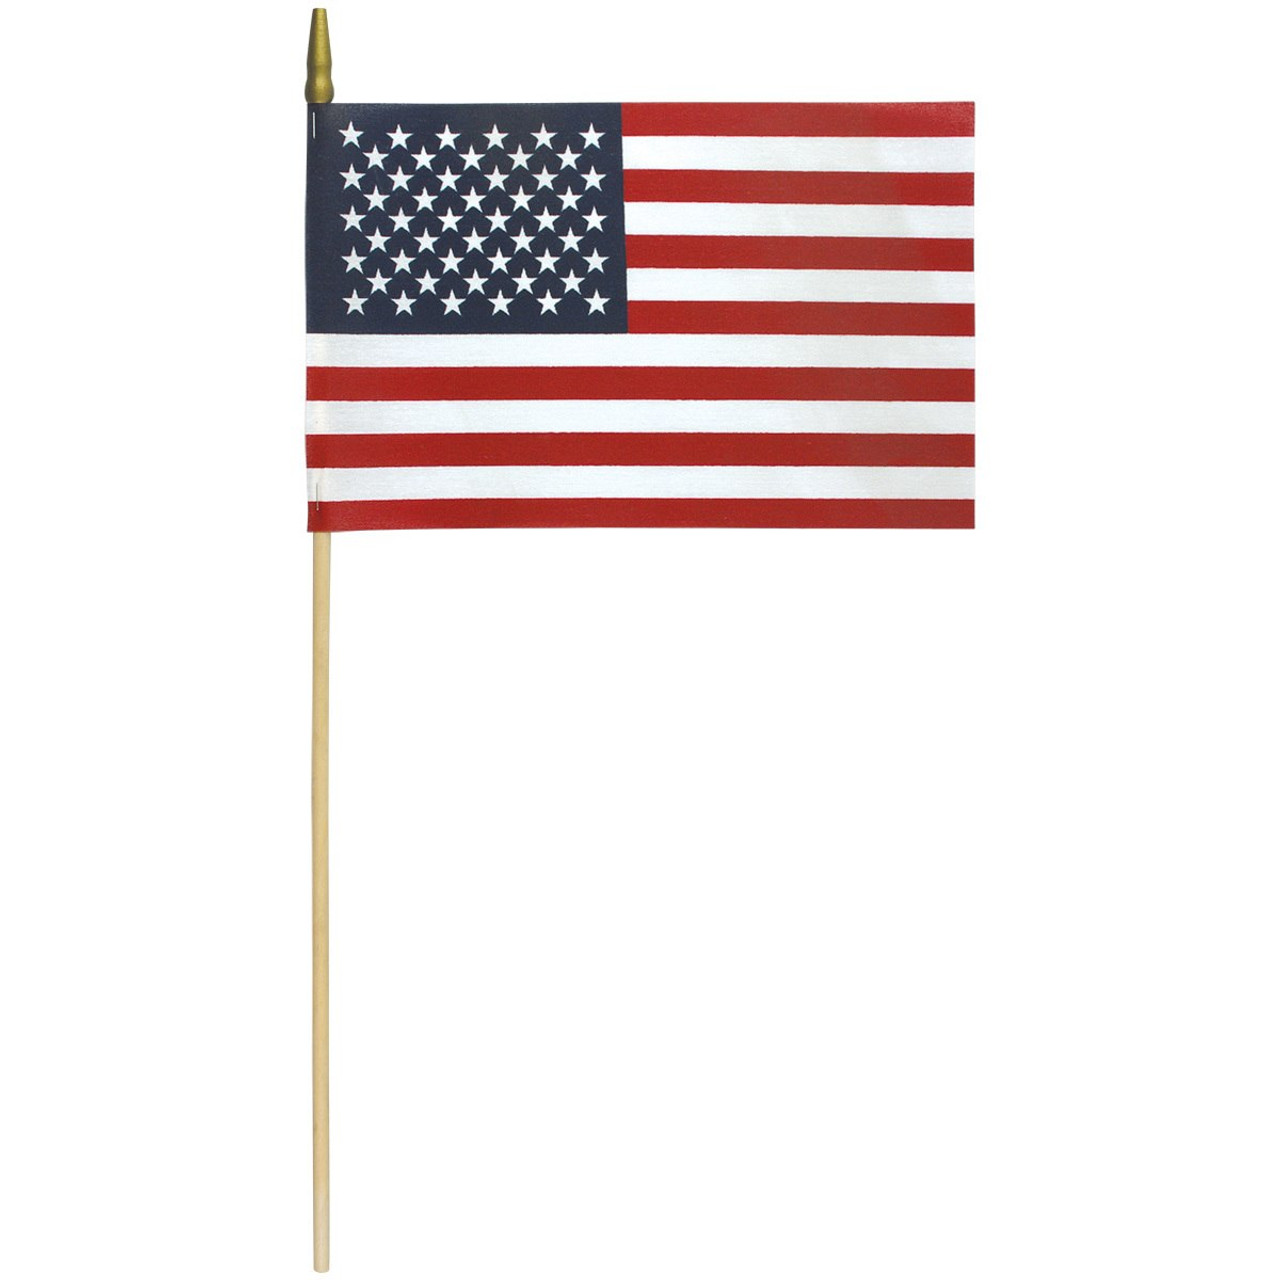 American Flag, Stick Flag, Handheld, 12in x 18in, HHUS12X18